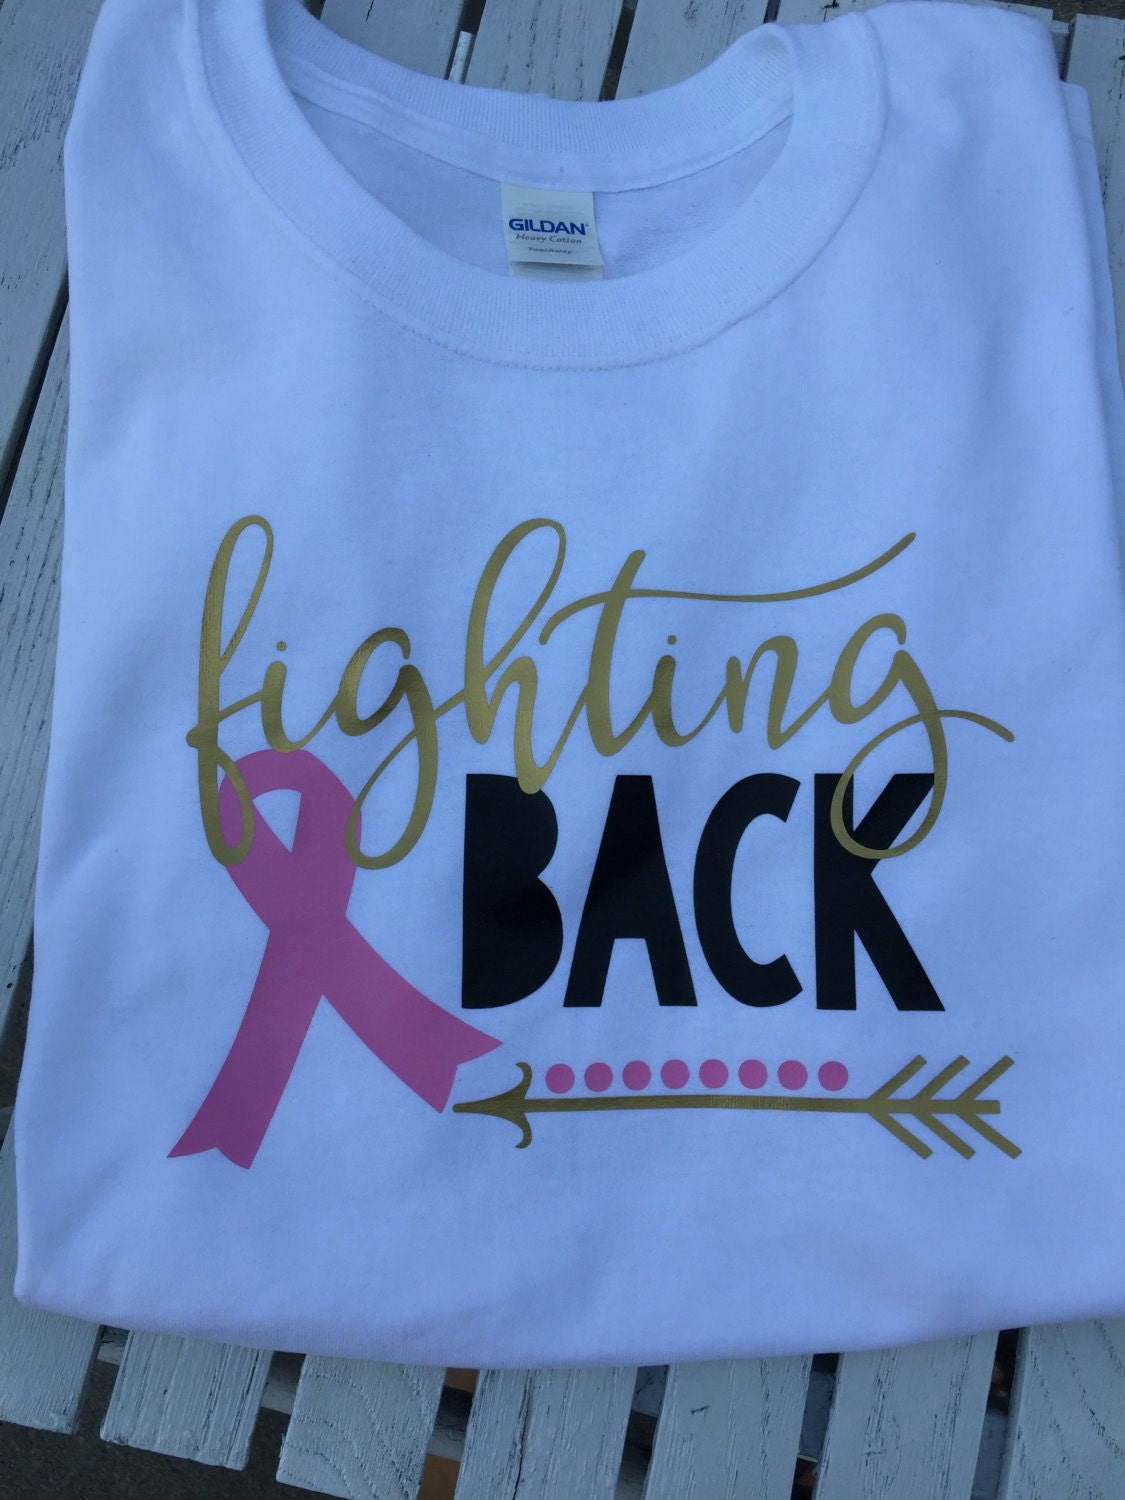 Fighting back breast cancer shirt for Breast cancer shirts ideas